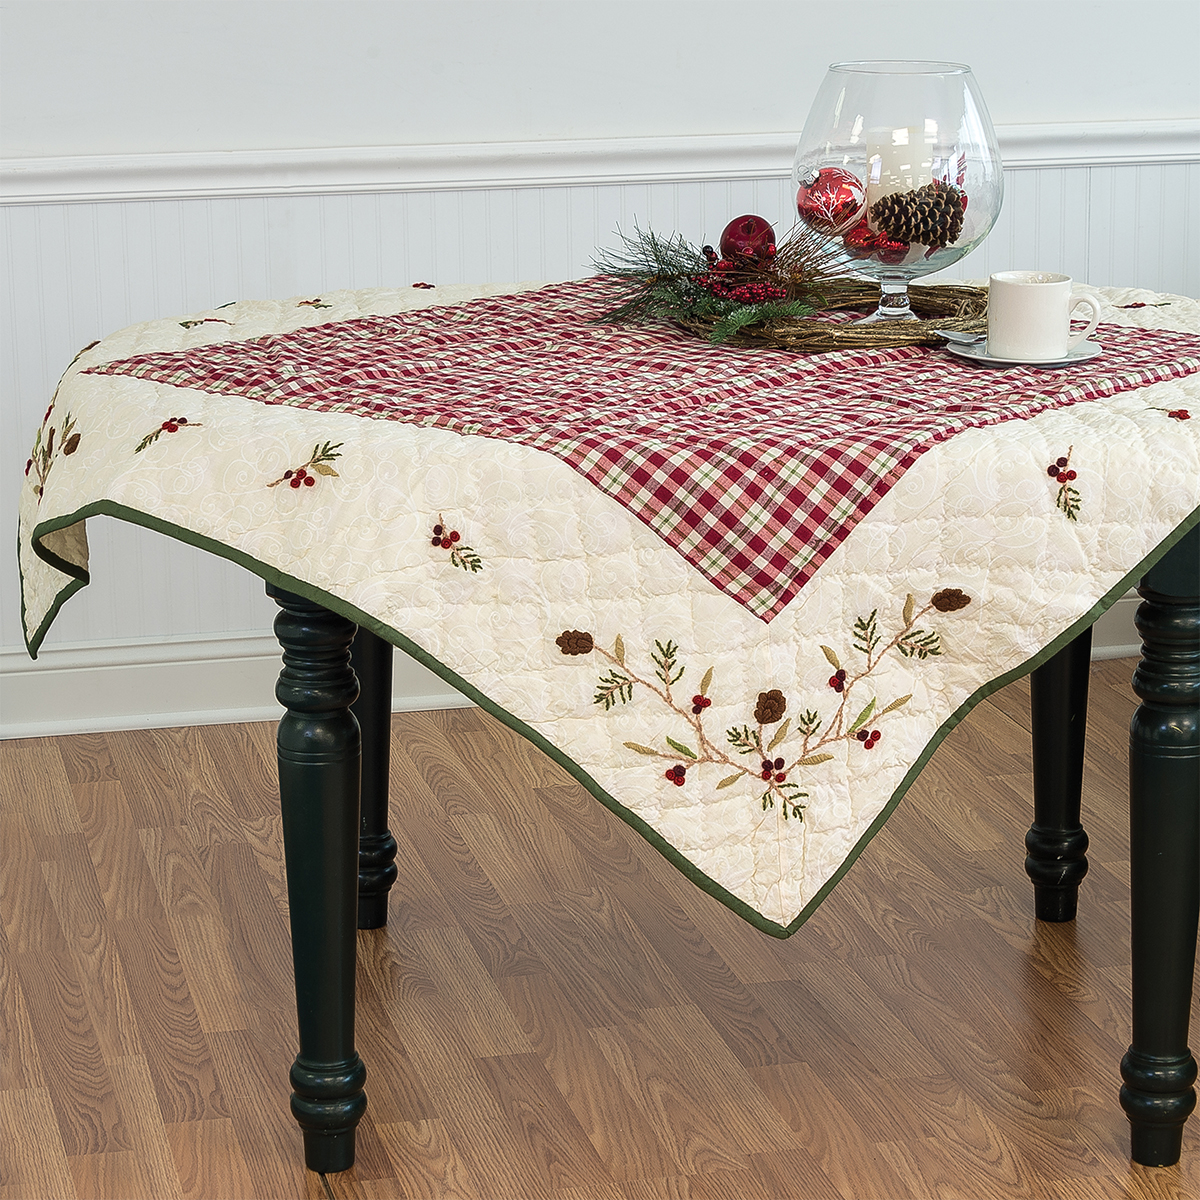 tabletop_holiday_tablecloths.jpg